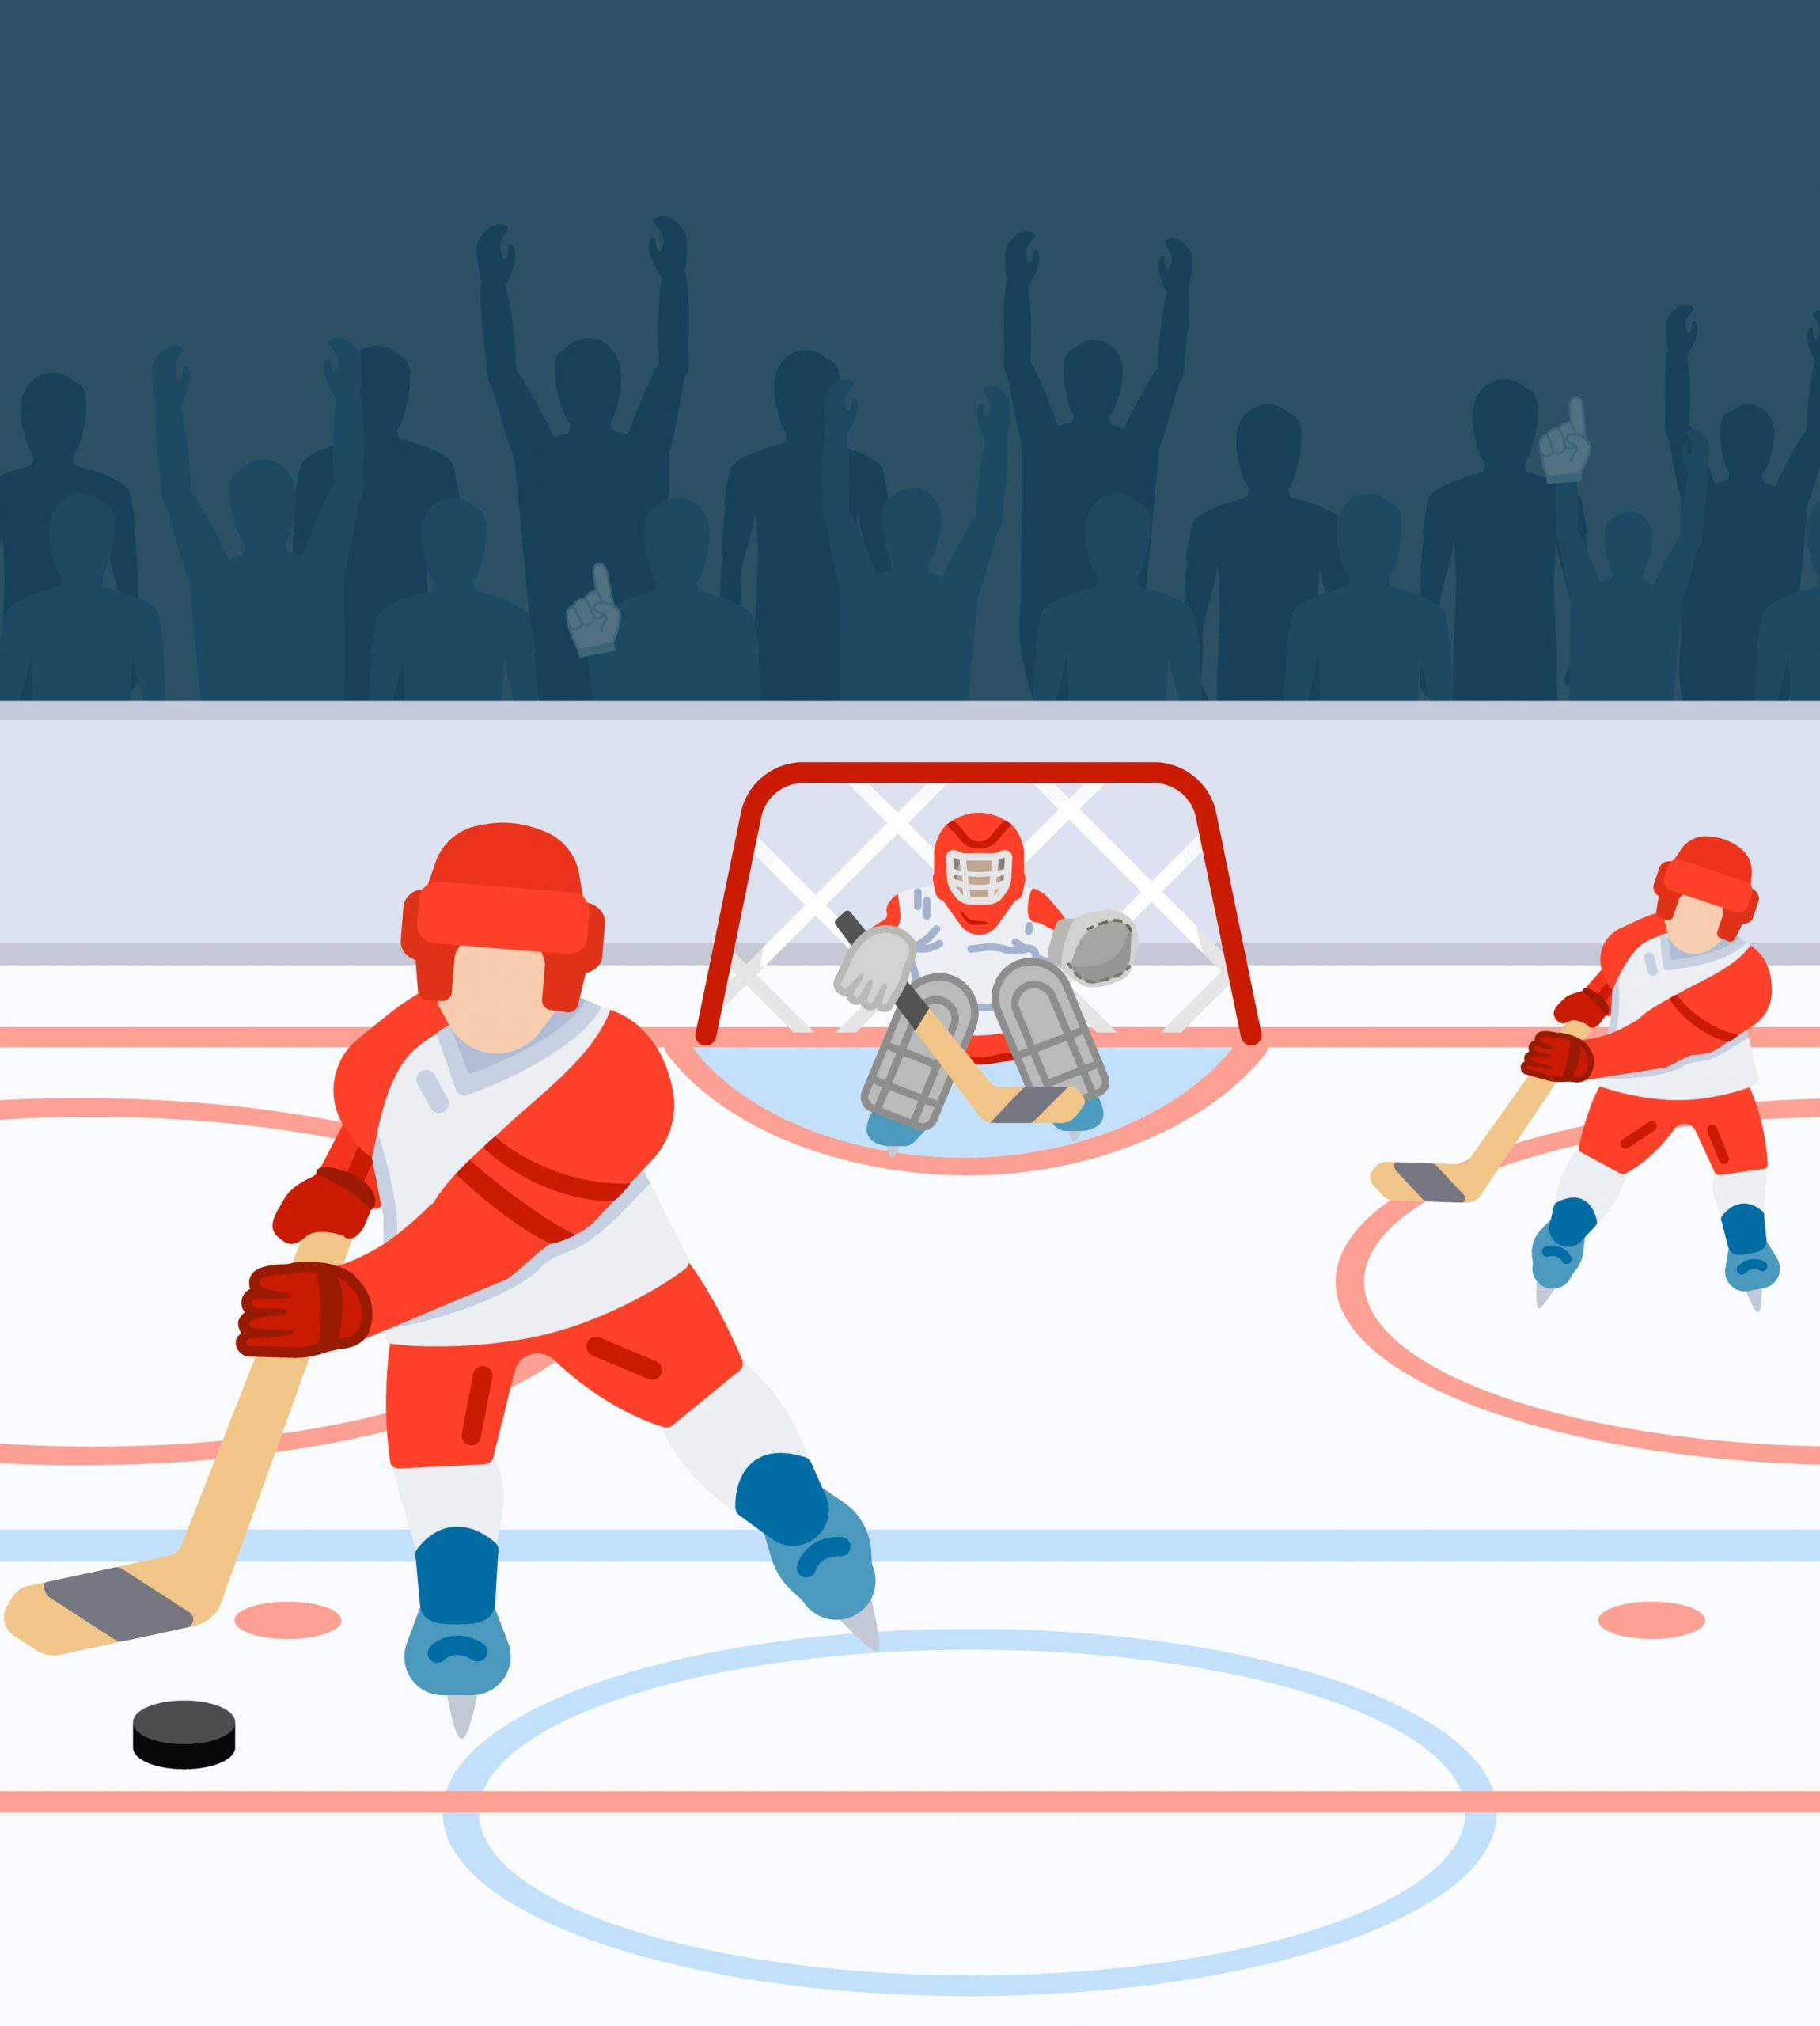 Goals: How One NHL Team Scored a Customer for Life